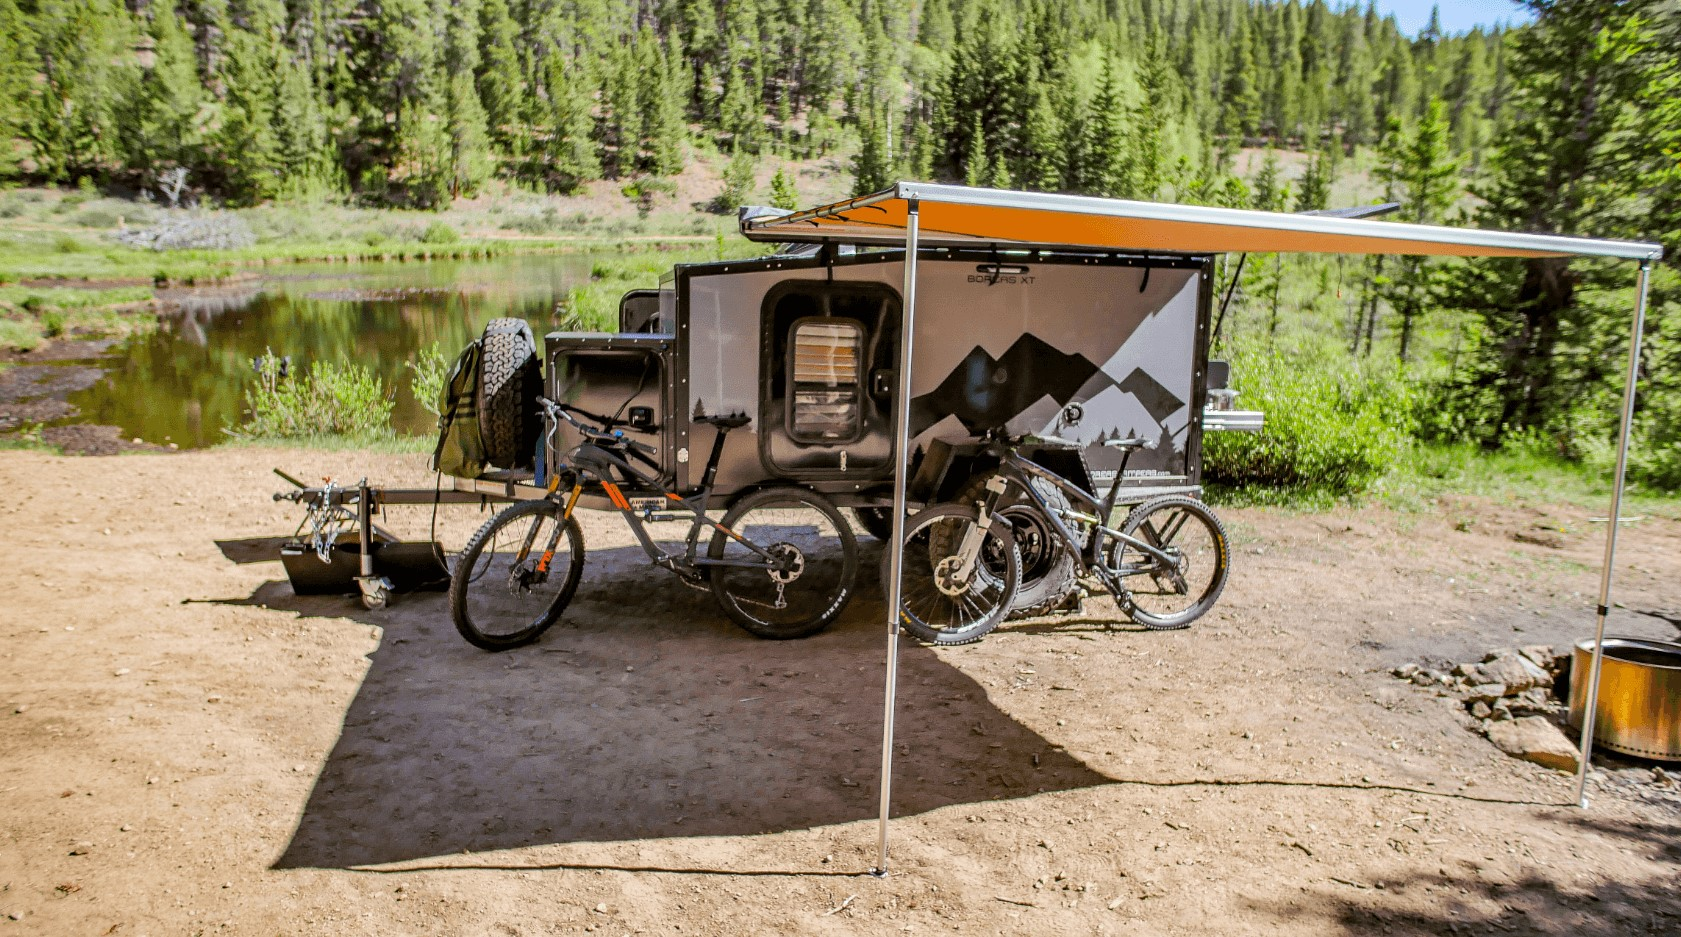 Camping in an off road camper trailer